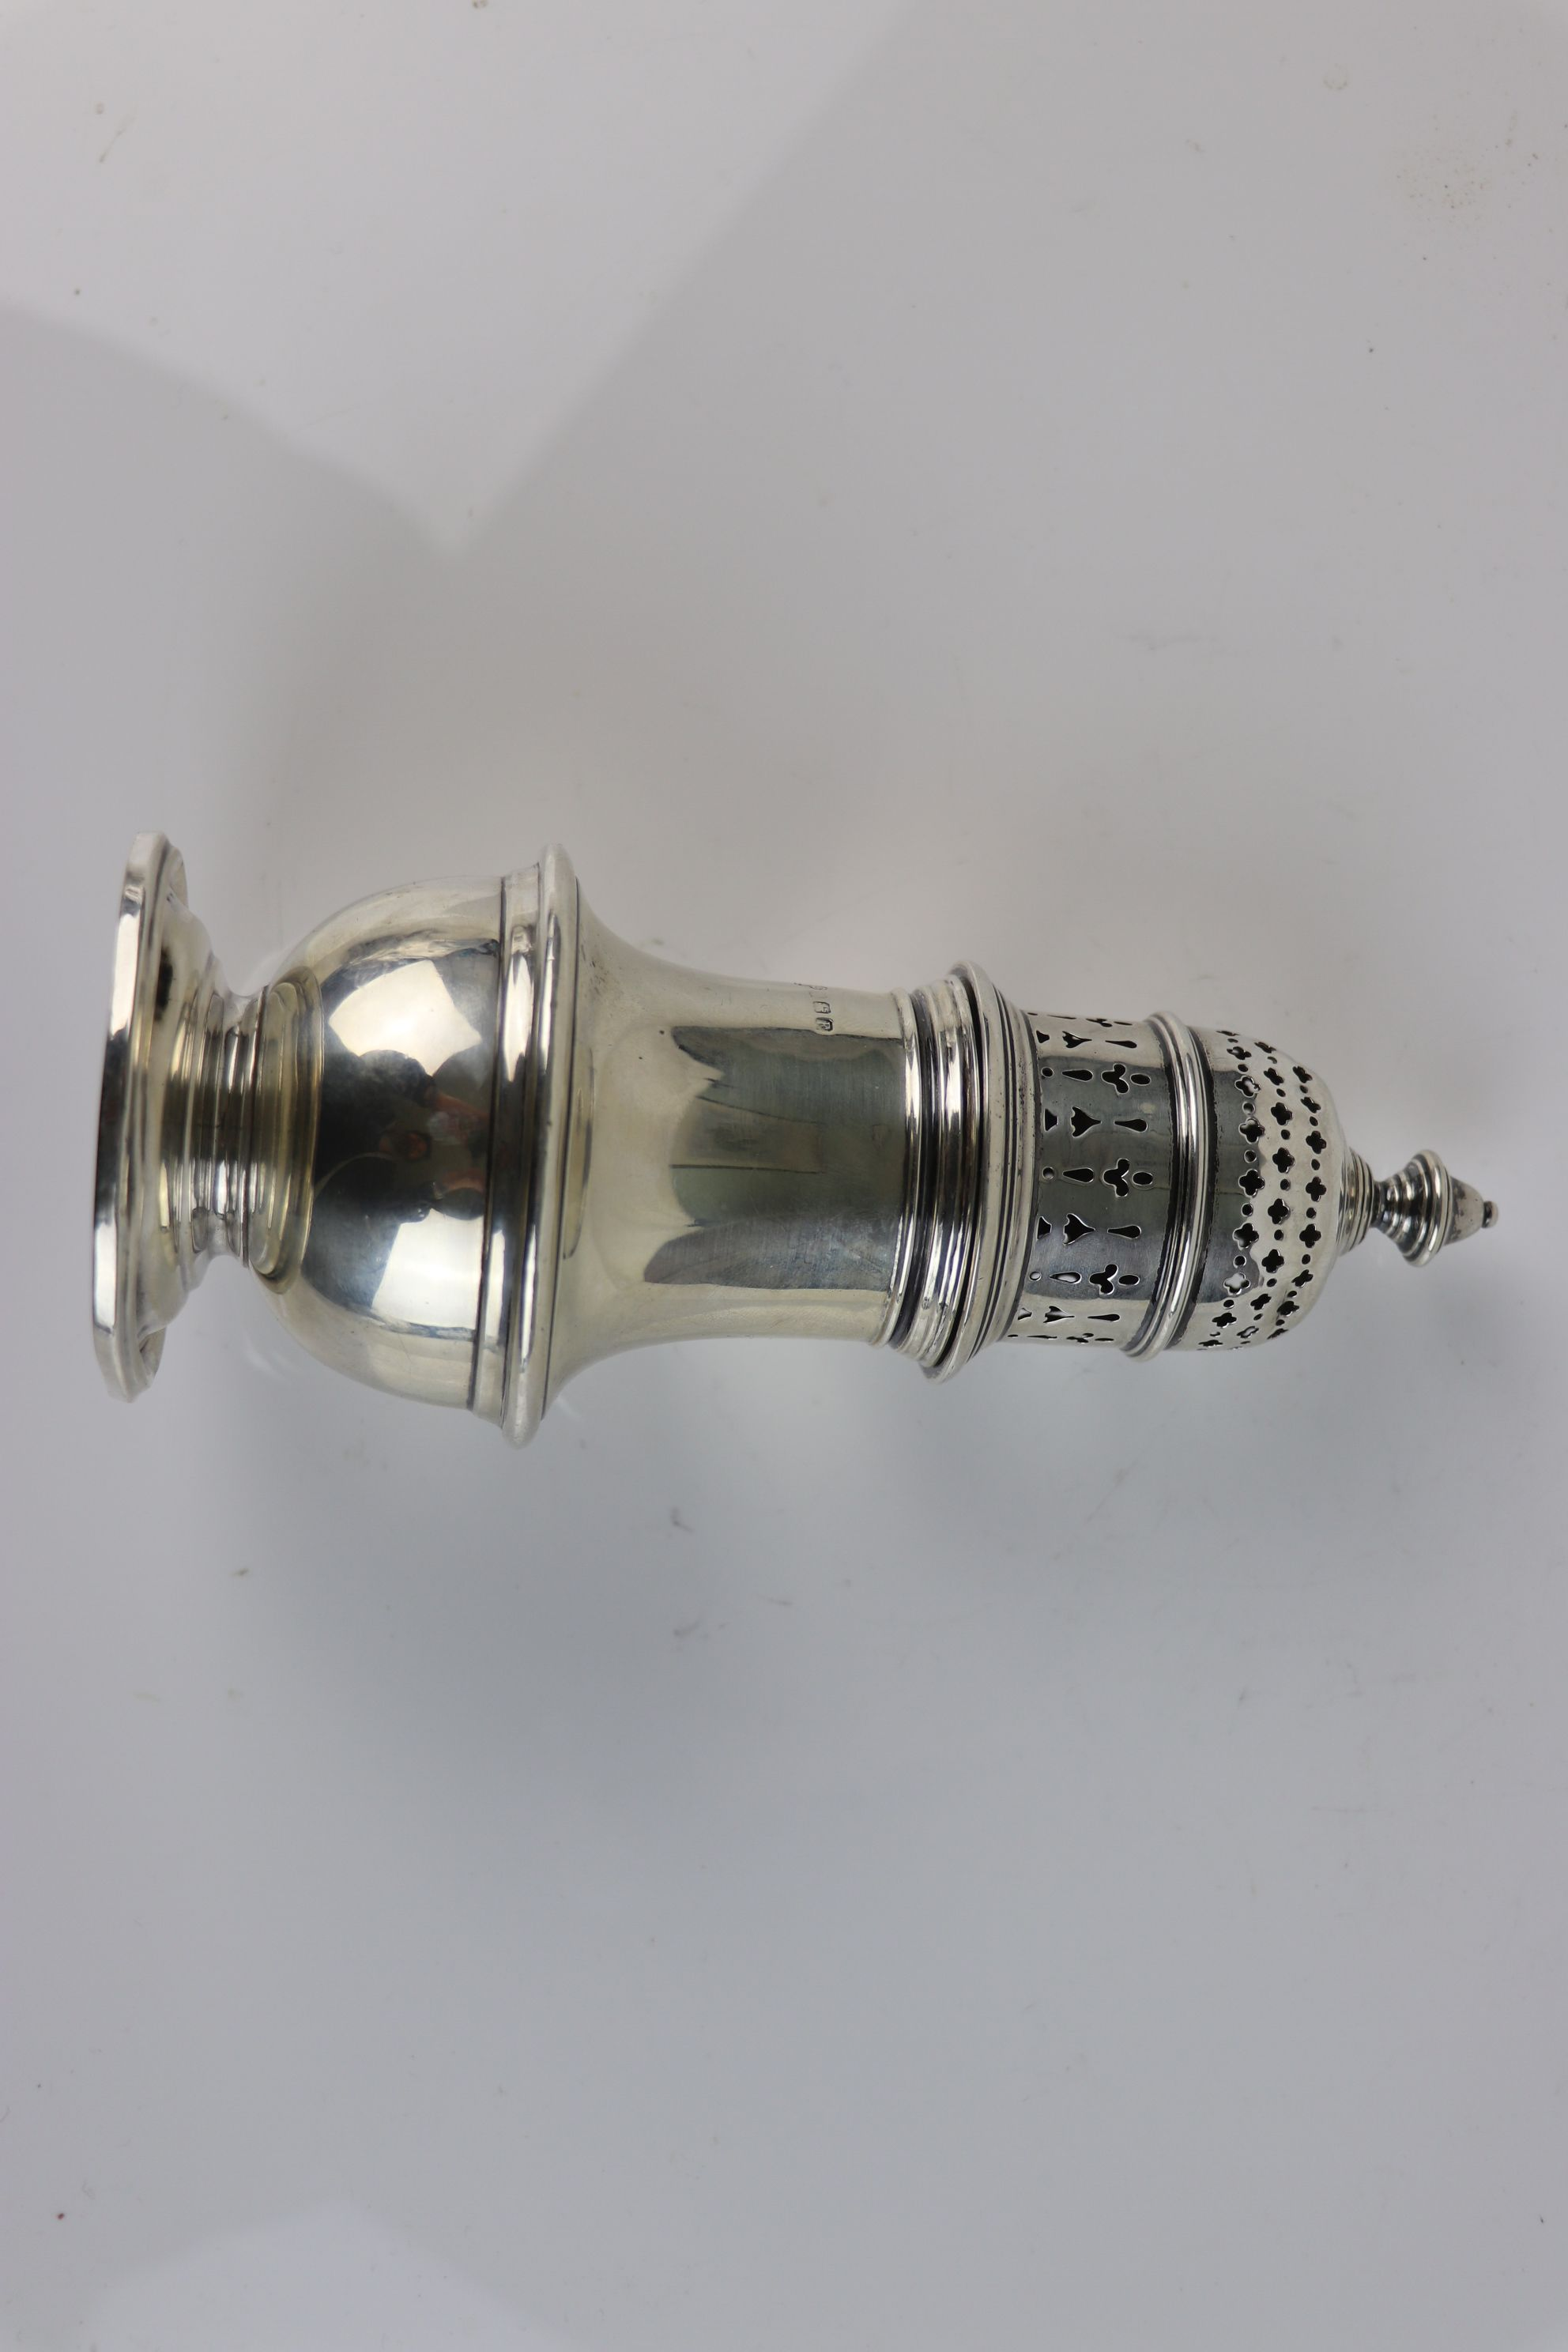 A fully hallmarked sterling silver sugar caster, maker marked for Selfridge & Co Ltd, assayed in